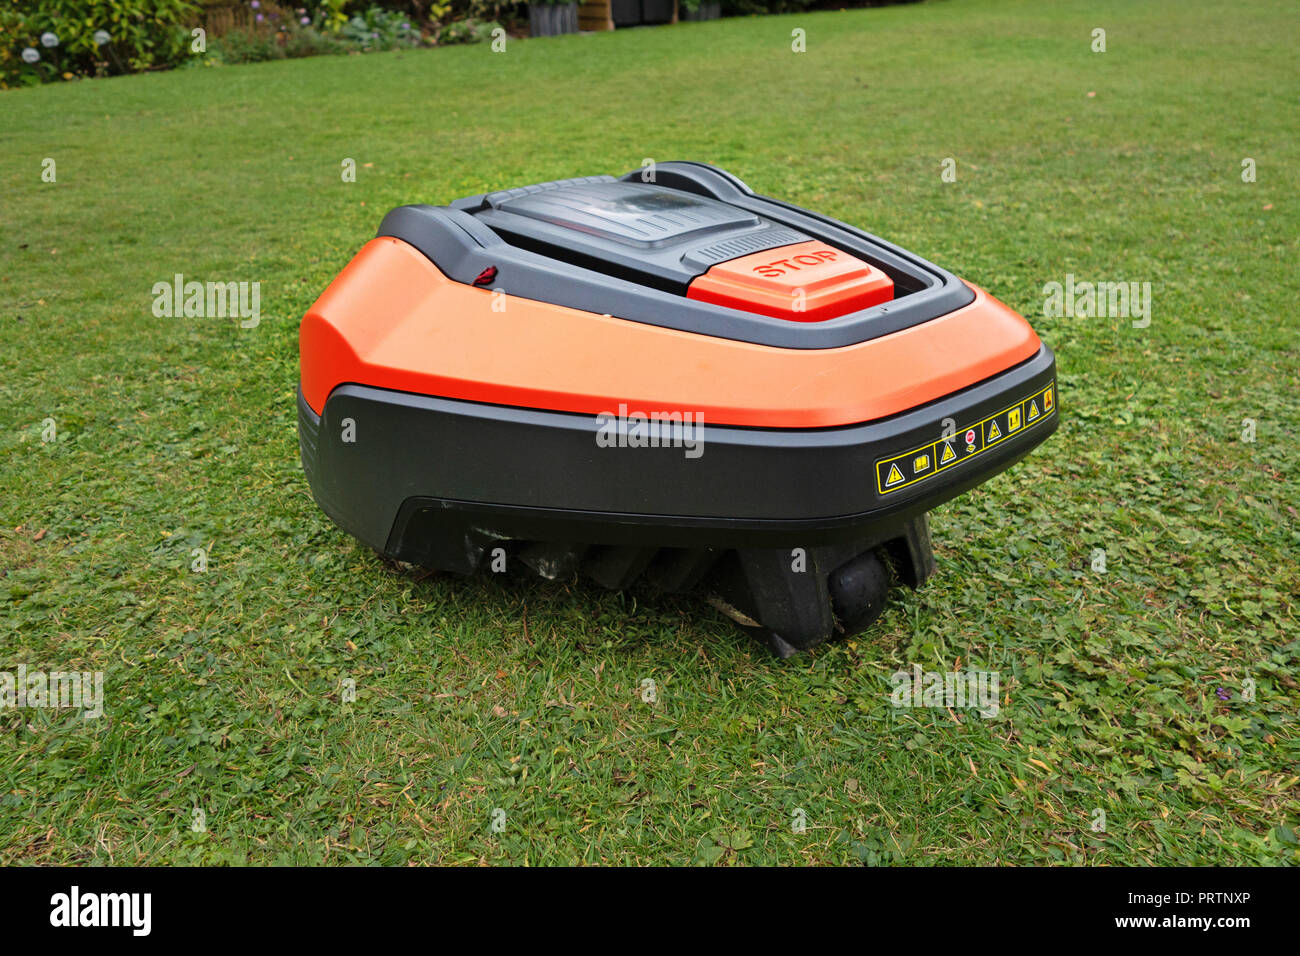 Hi Tech Robot completely Automatic lawn mower Stock Photo